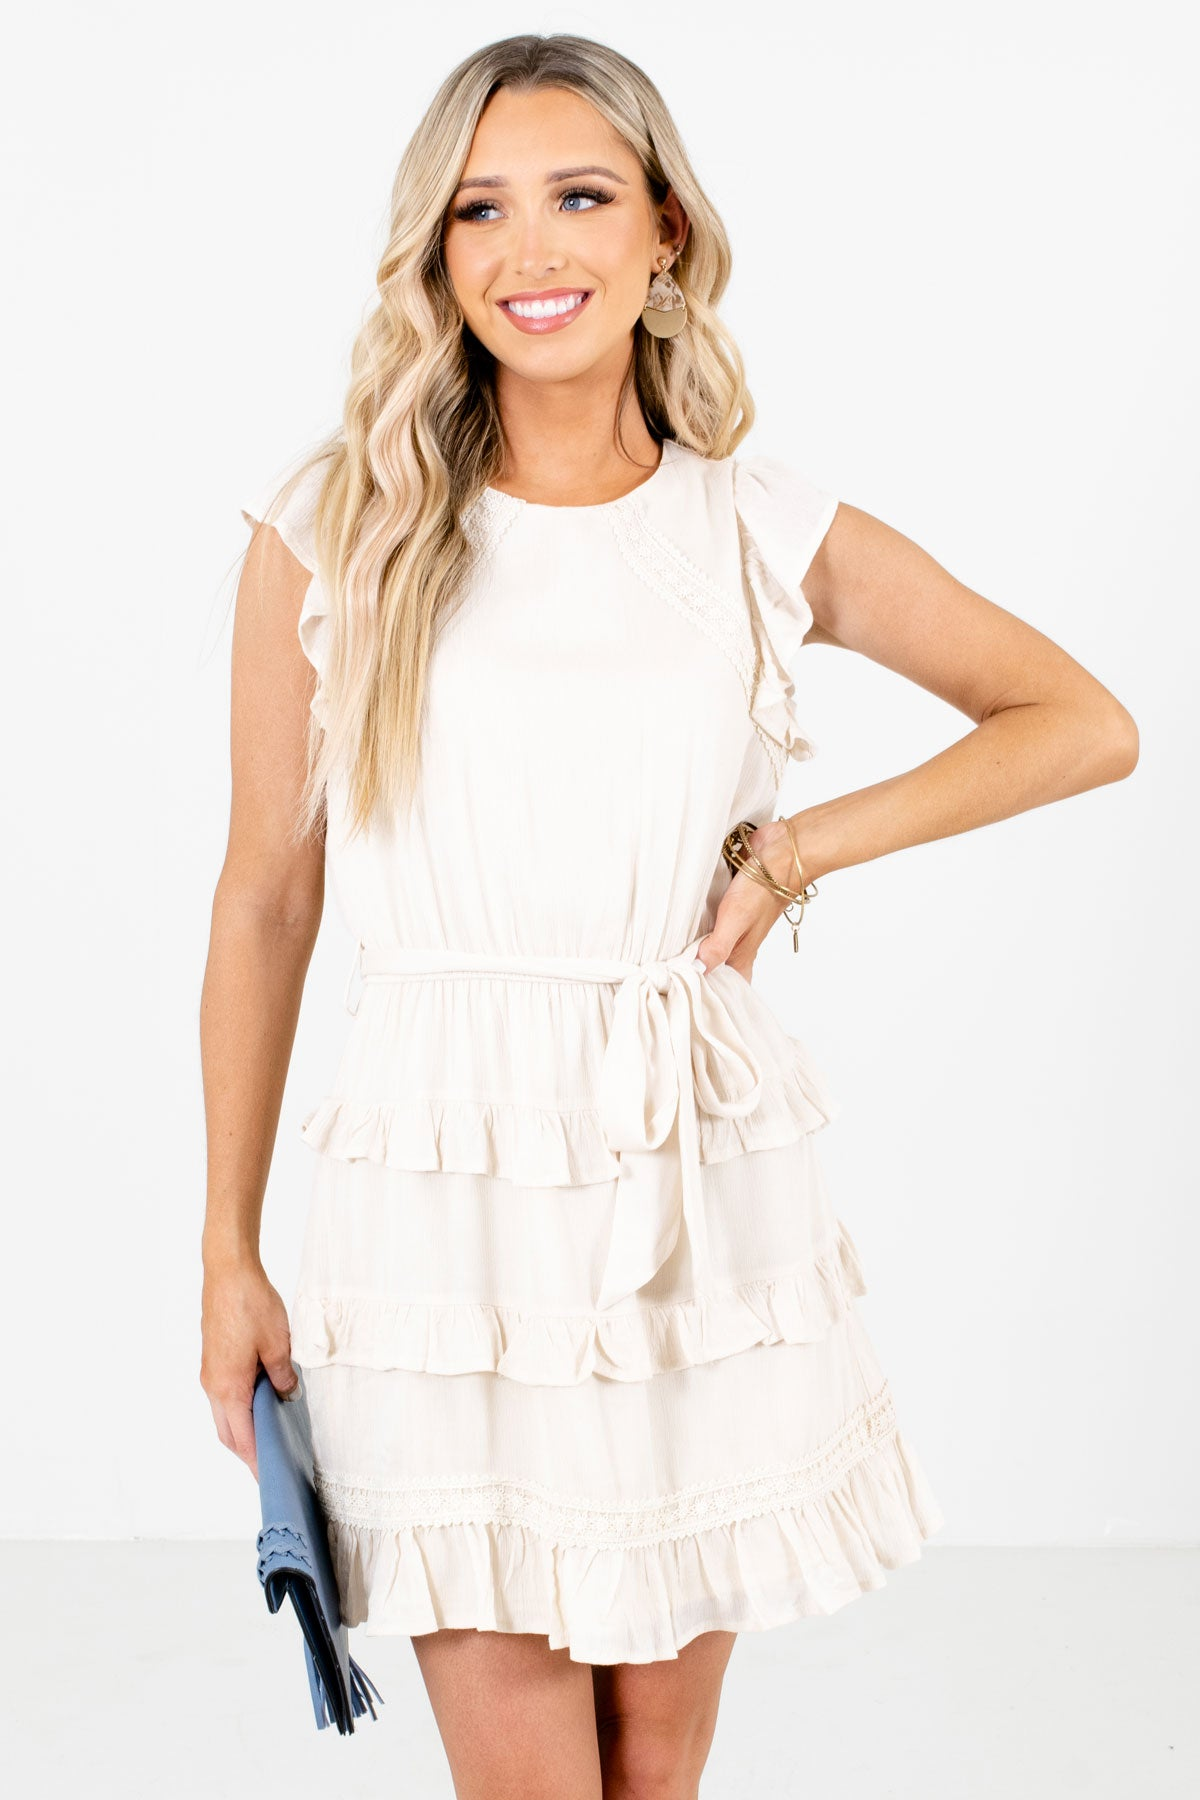 Cream Ruffle Accented Boutique Mini Dresses for Women